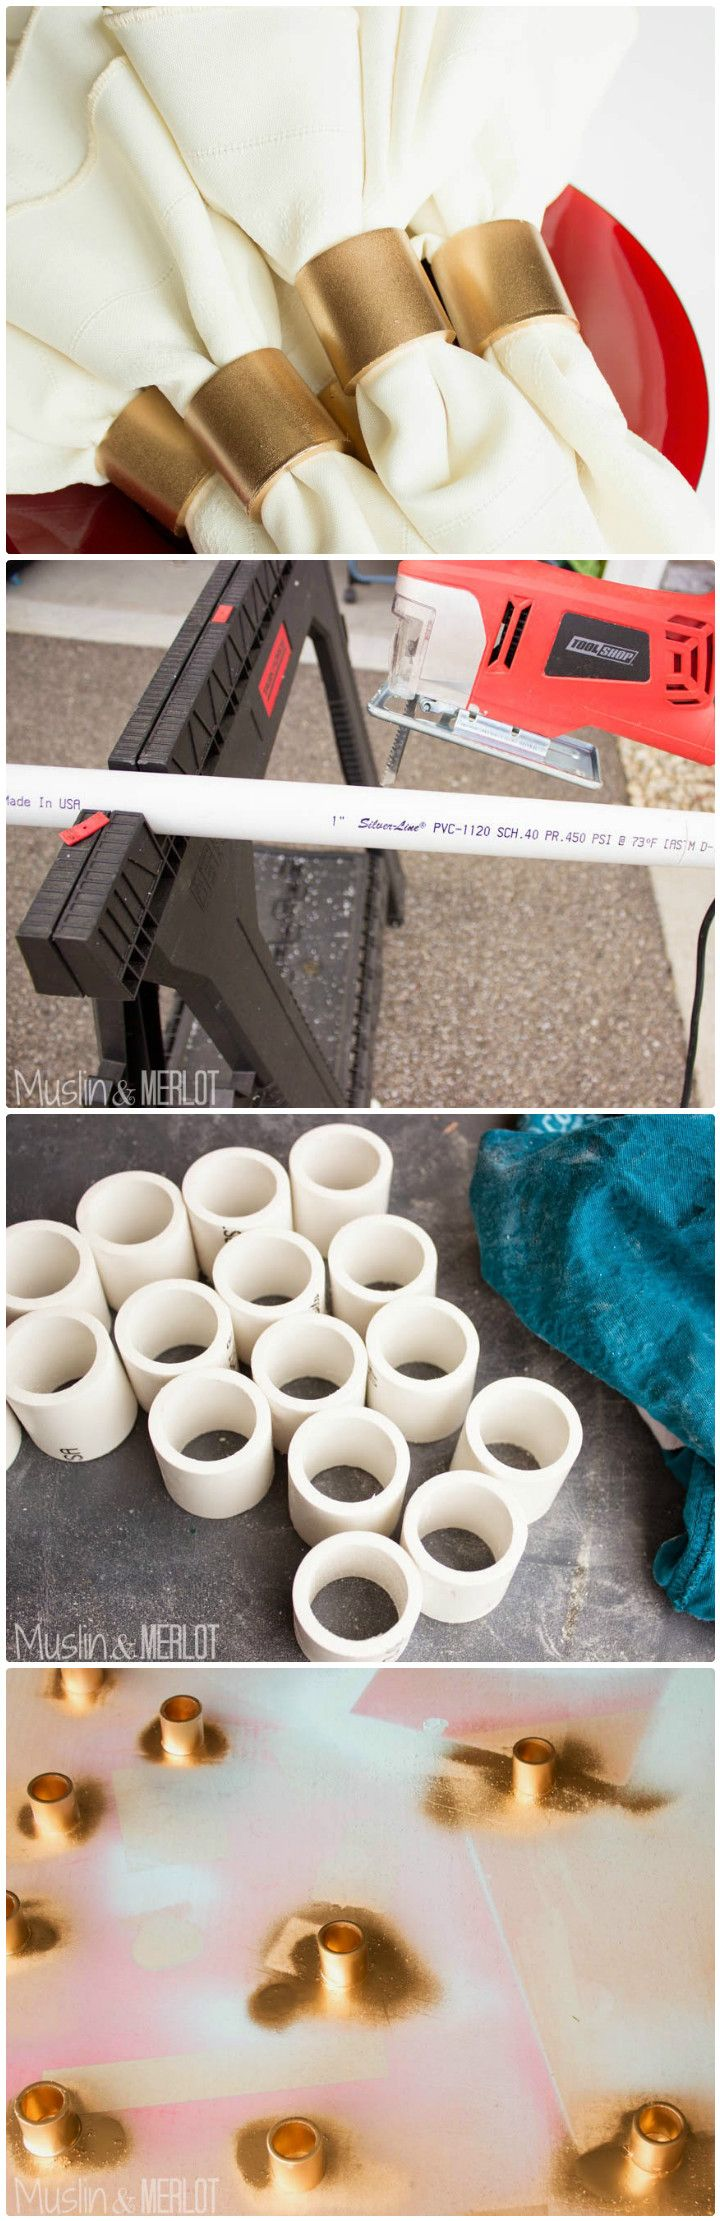 48 DIY Projects out of PVC Pipe You Should Make #napkinrings